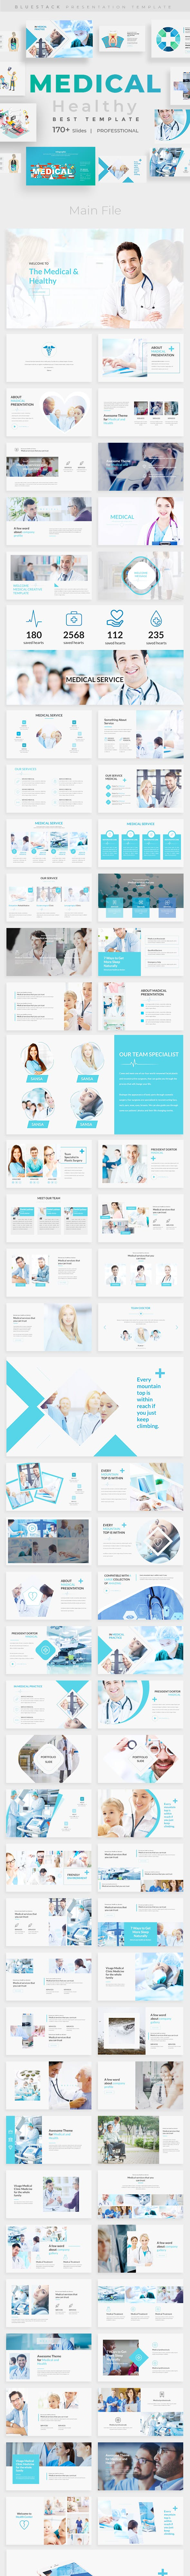 medical health care powerpoint template by bluestack graphicriver